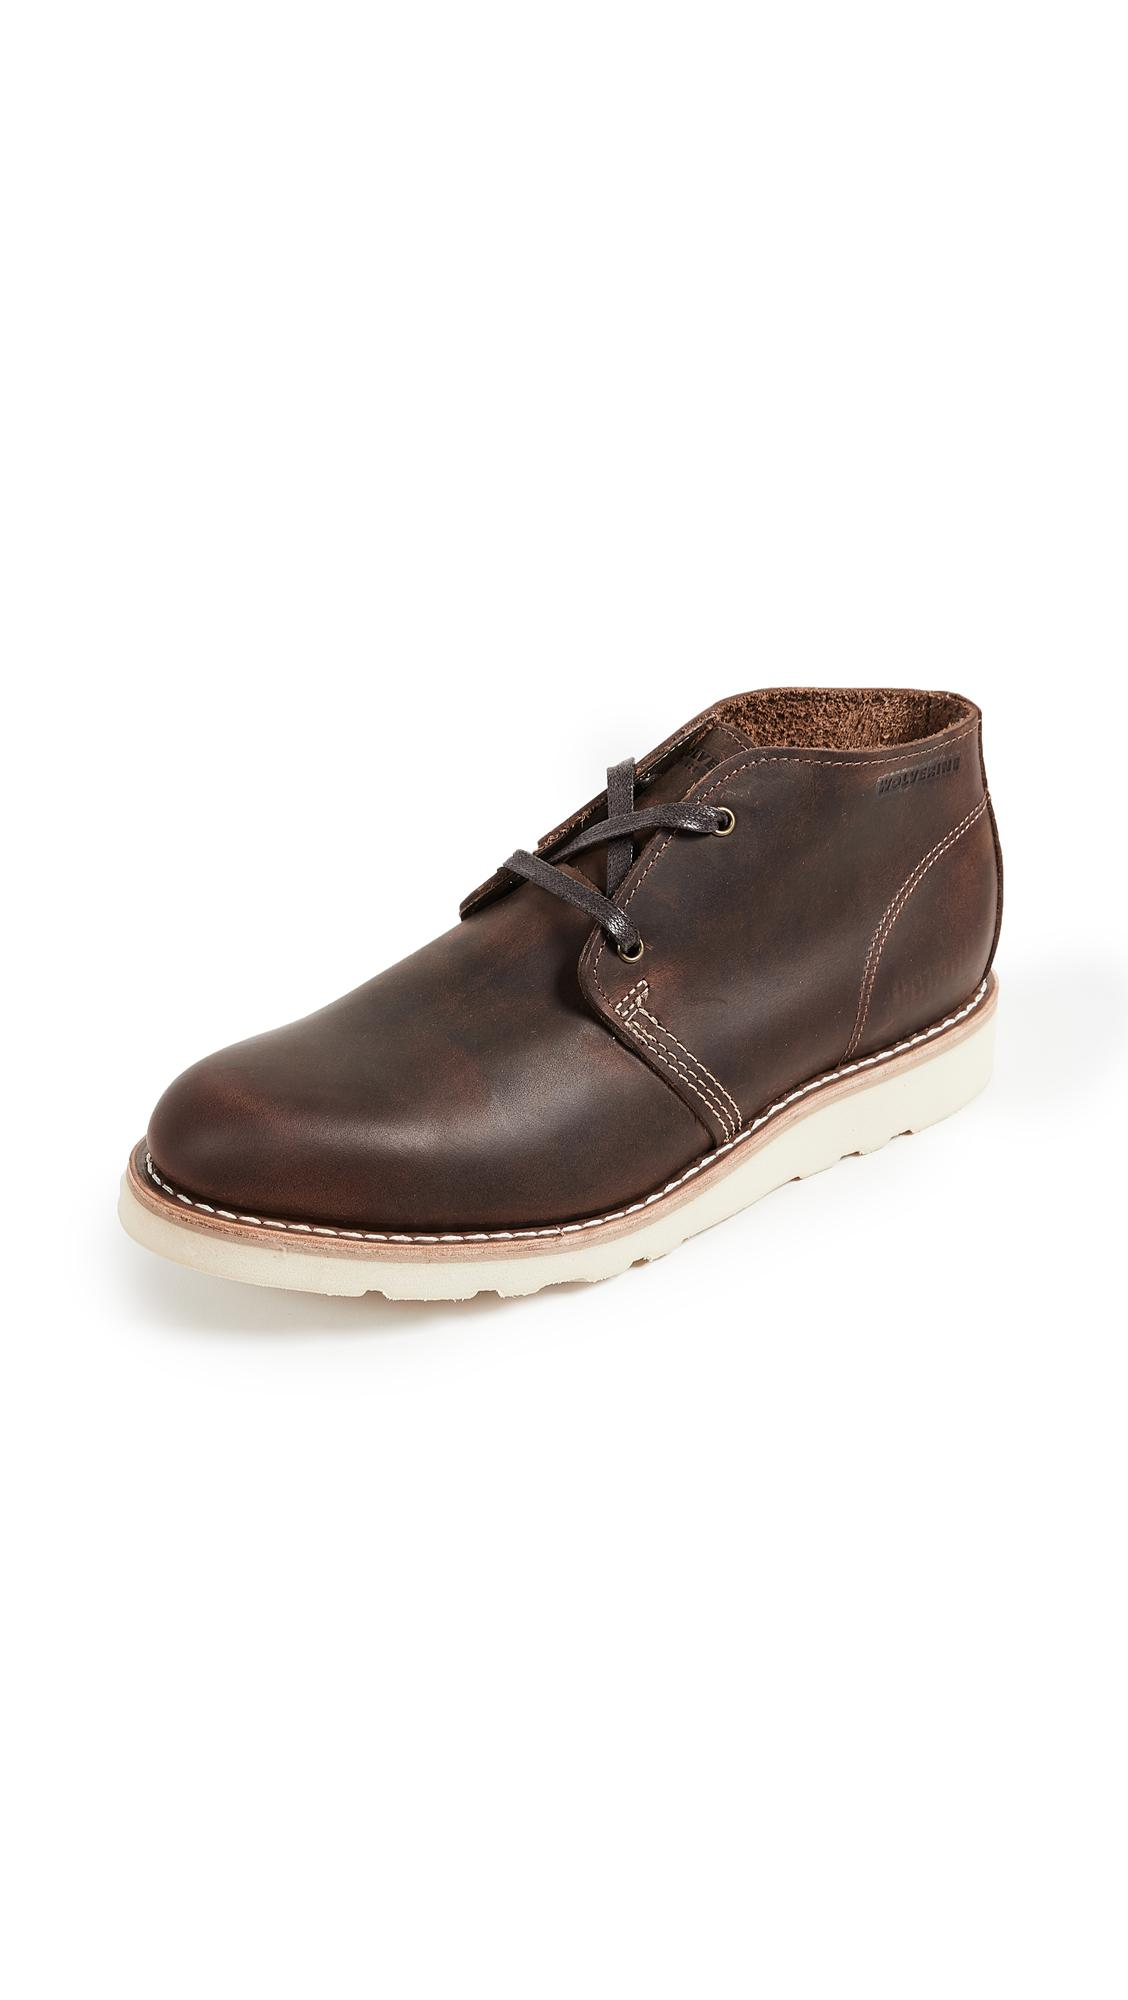 469d712b716 Wolverine Brown Liam Chukka Boots for men